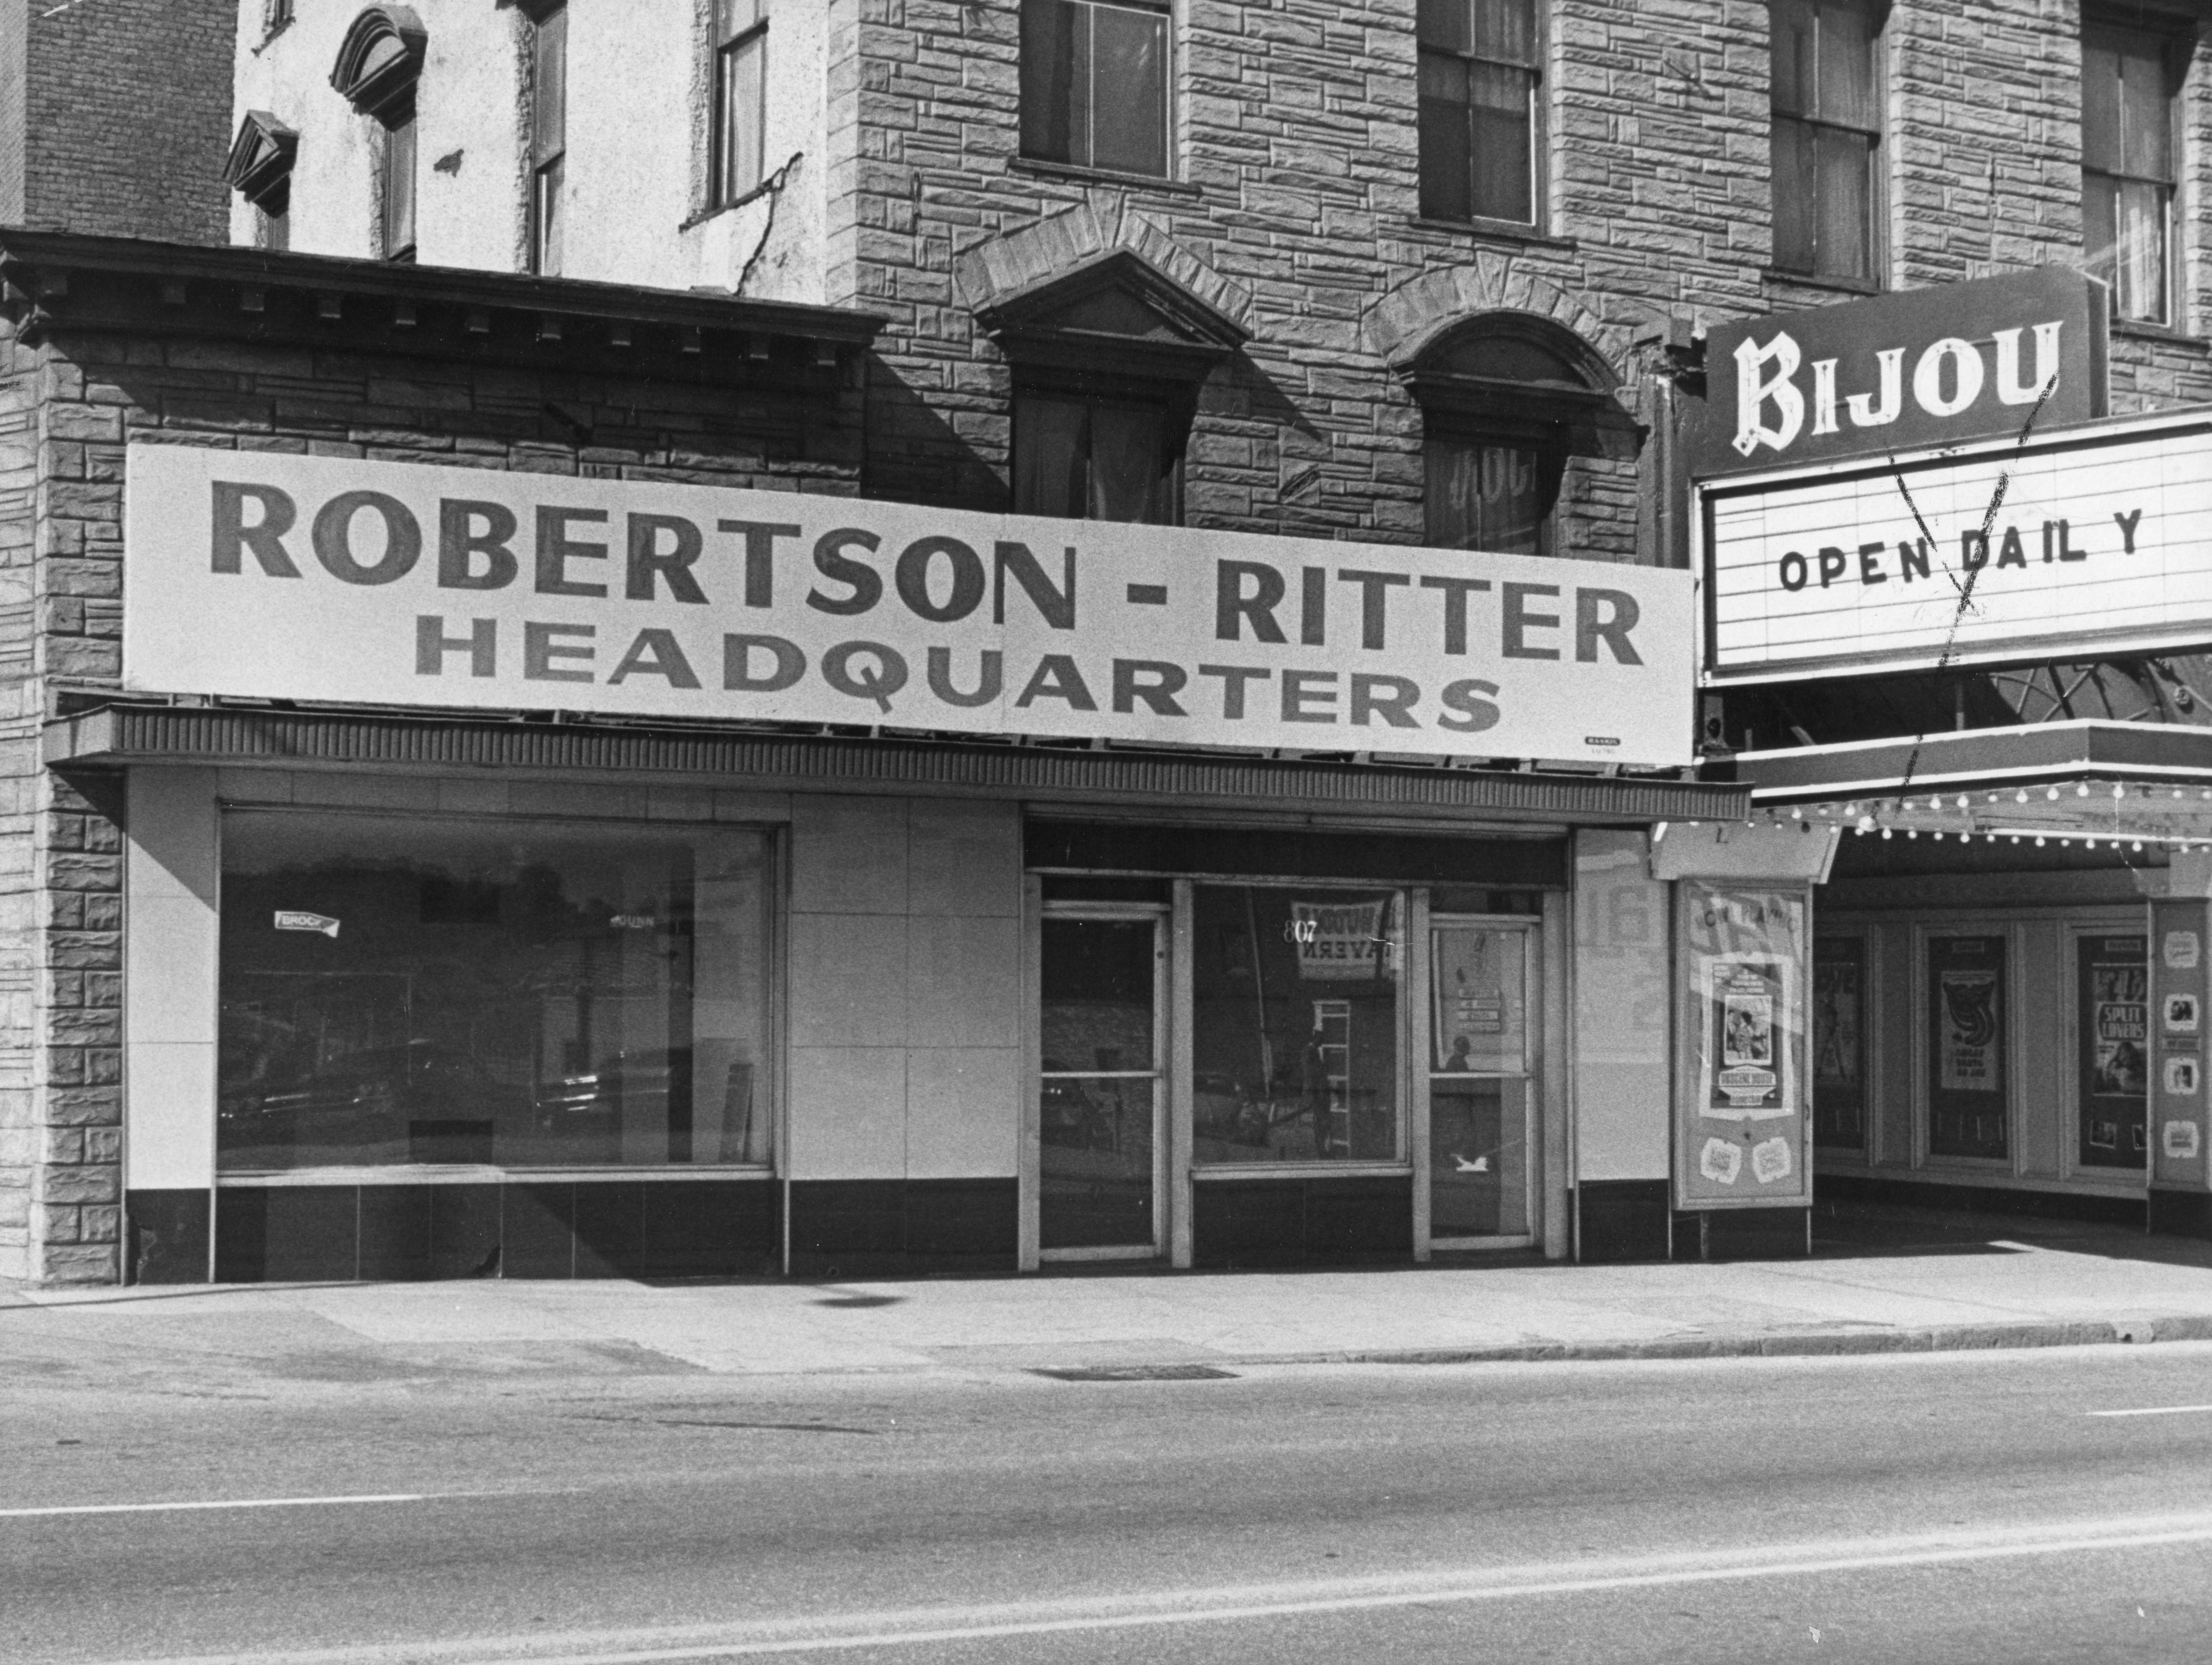 The Robertson-Ritter entrance beside the Bijou Theatre on October 7, 1970.